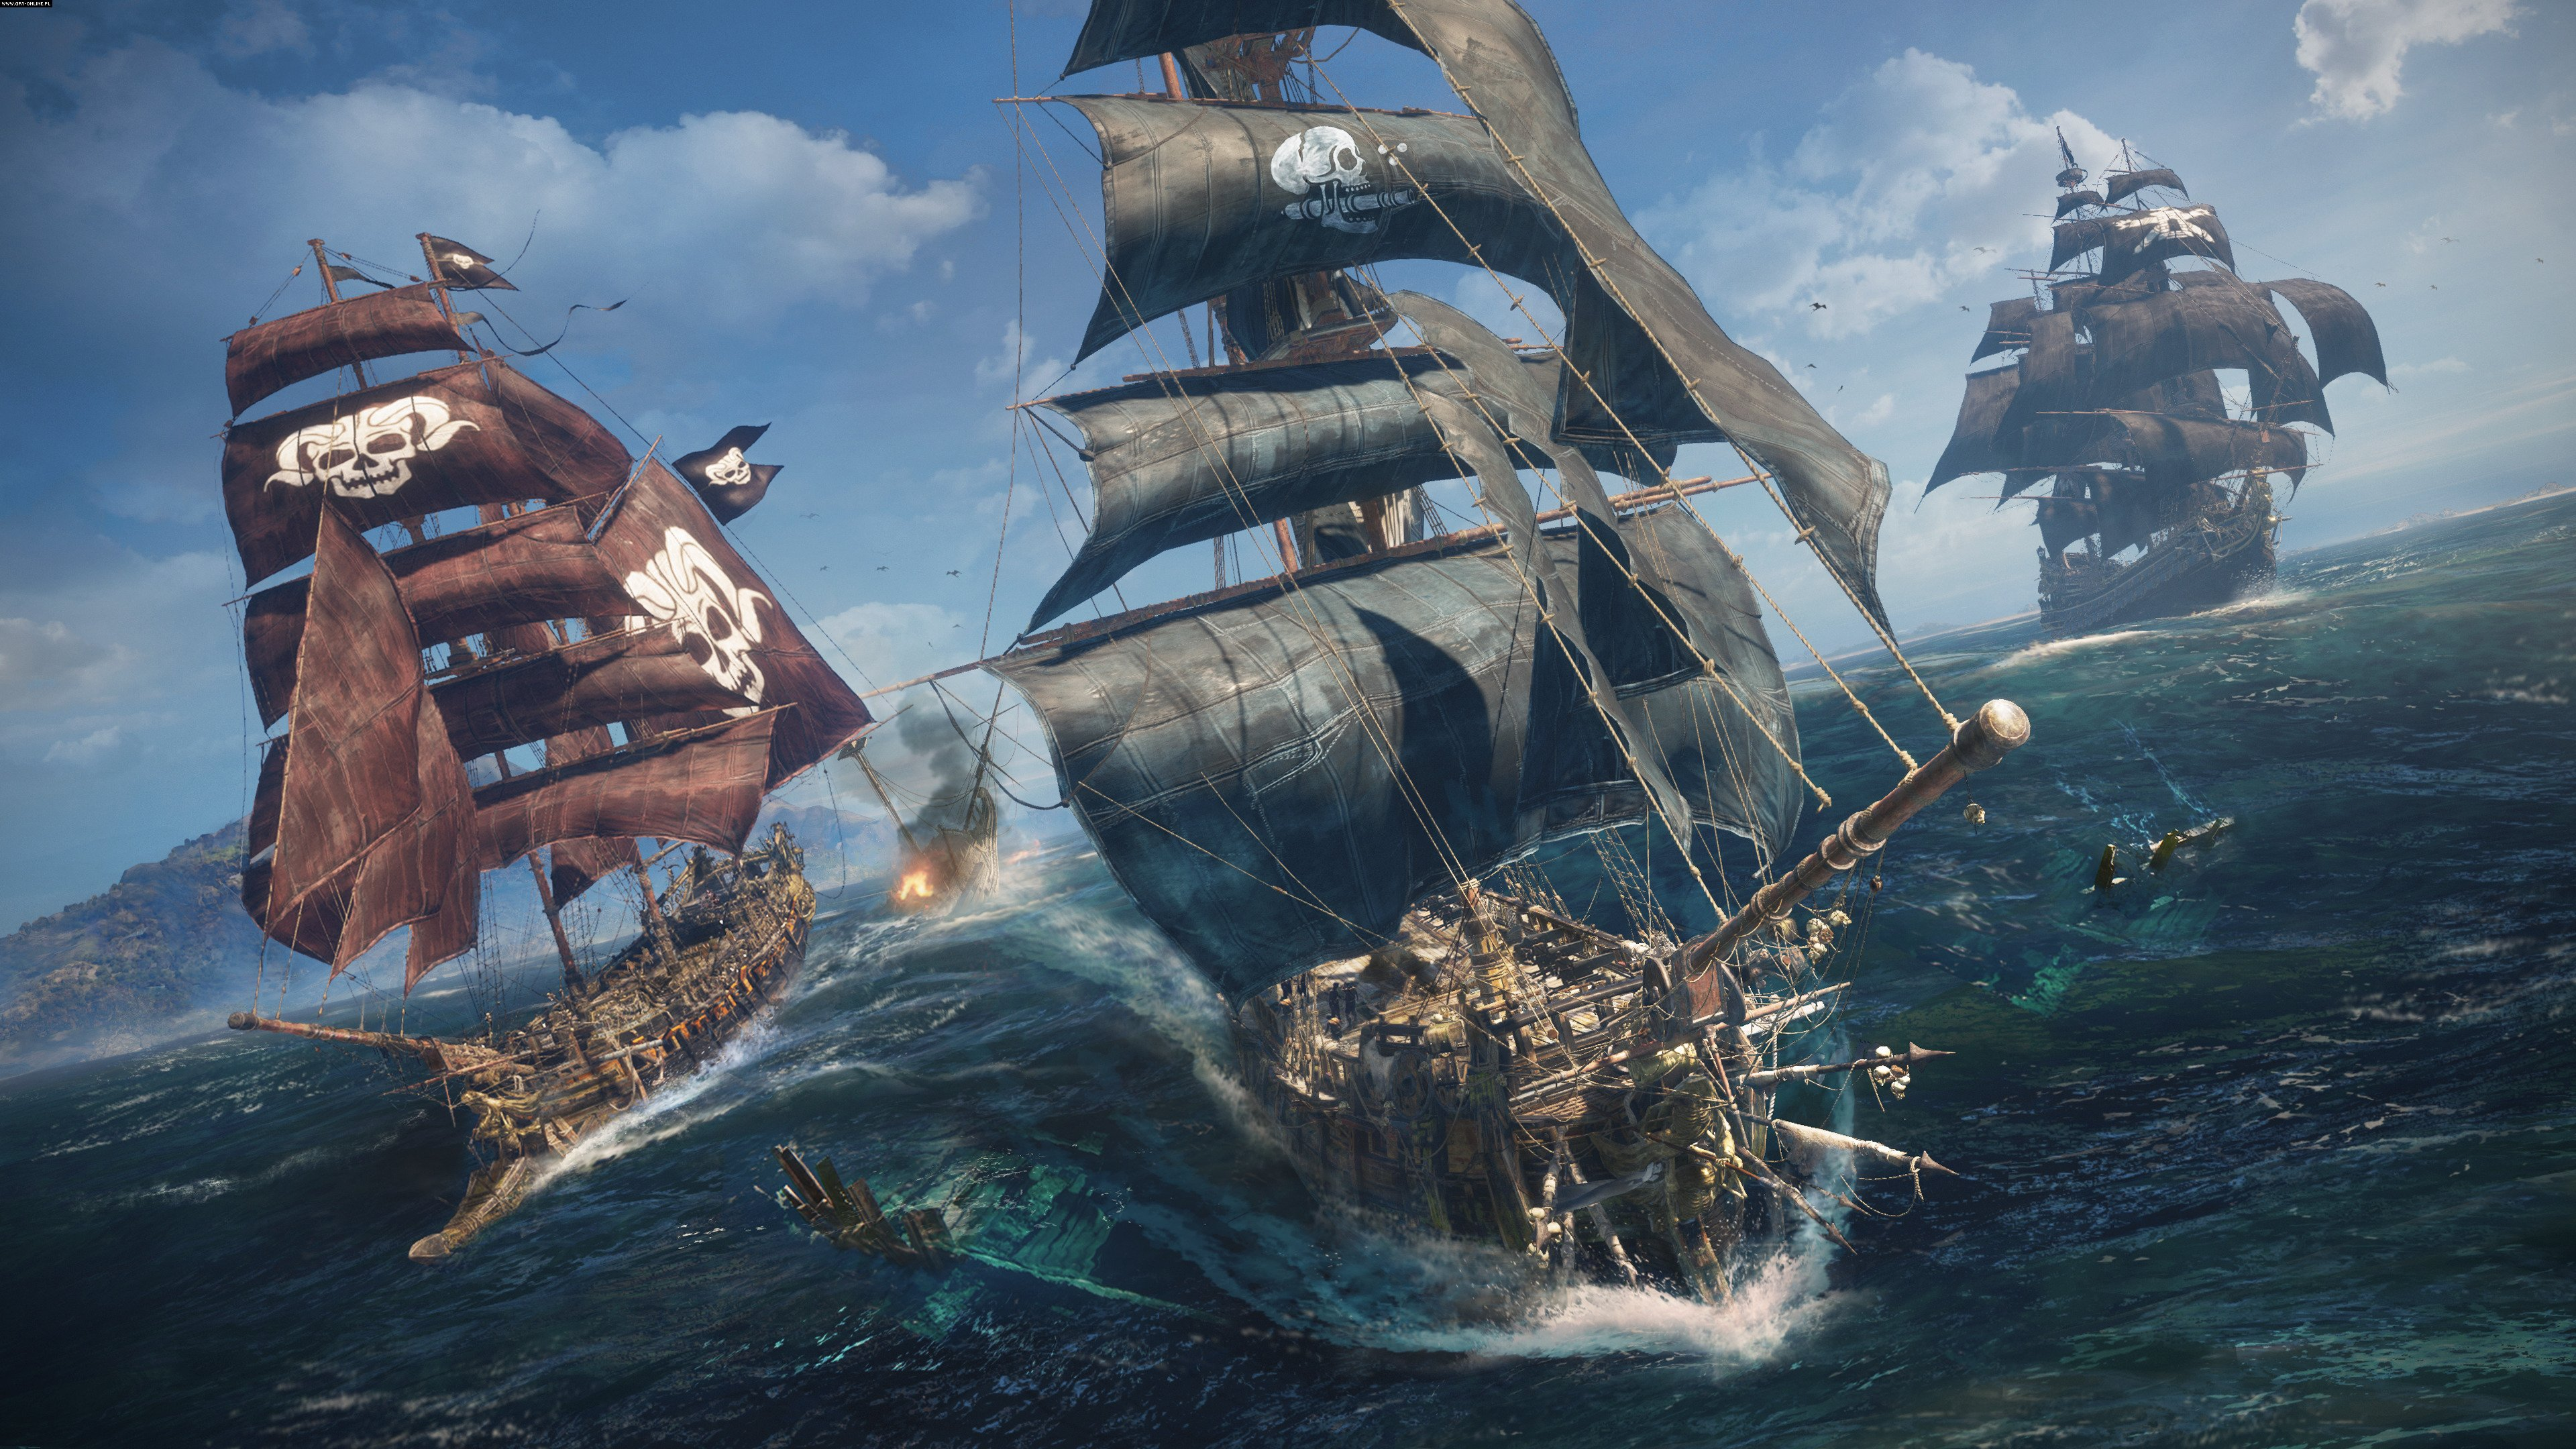 Skull & Bones PC, PS4, XONE Gry Screen 2/13, Ubisoft